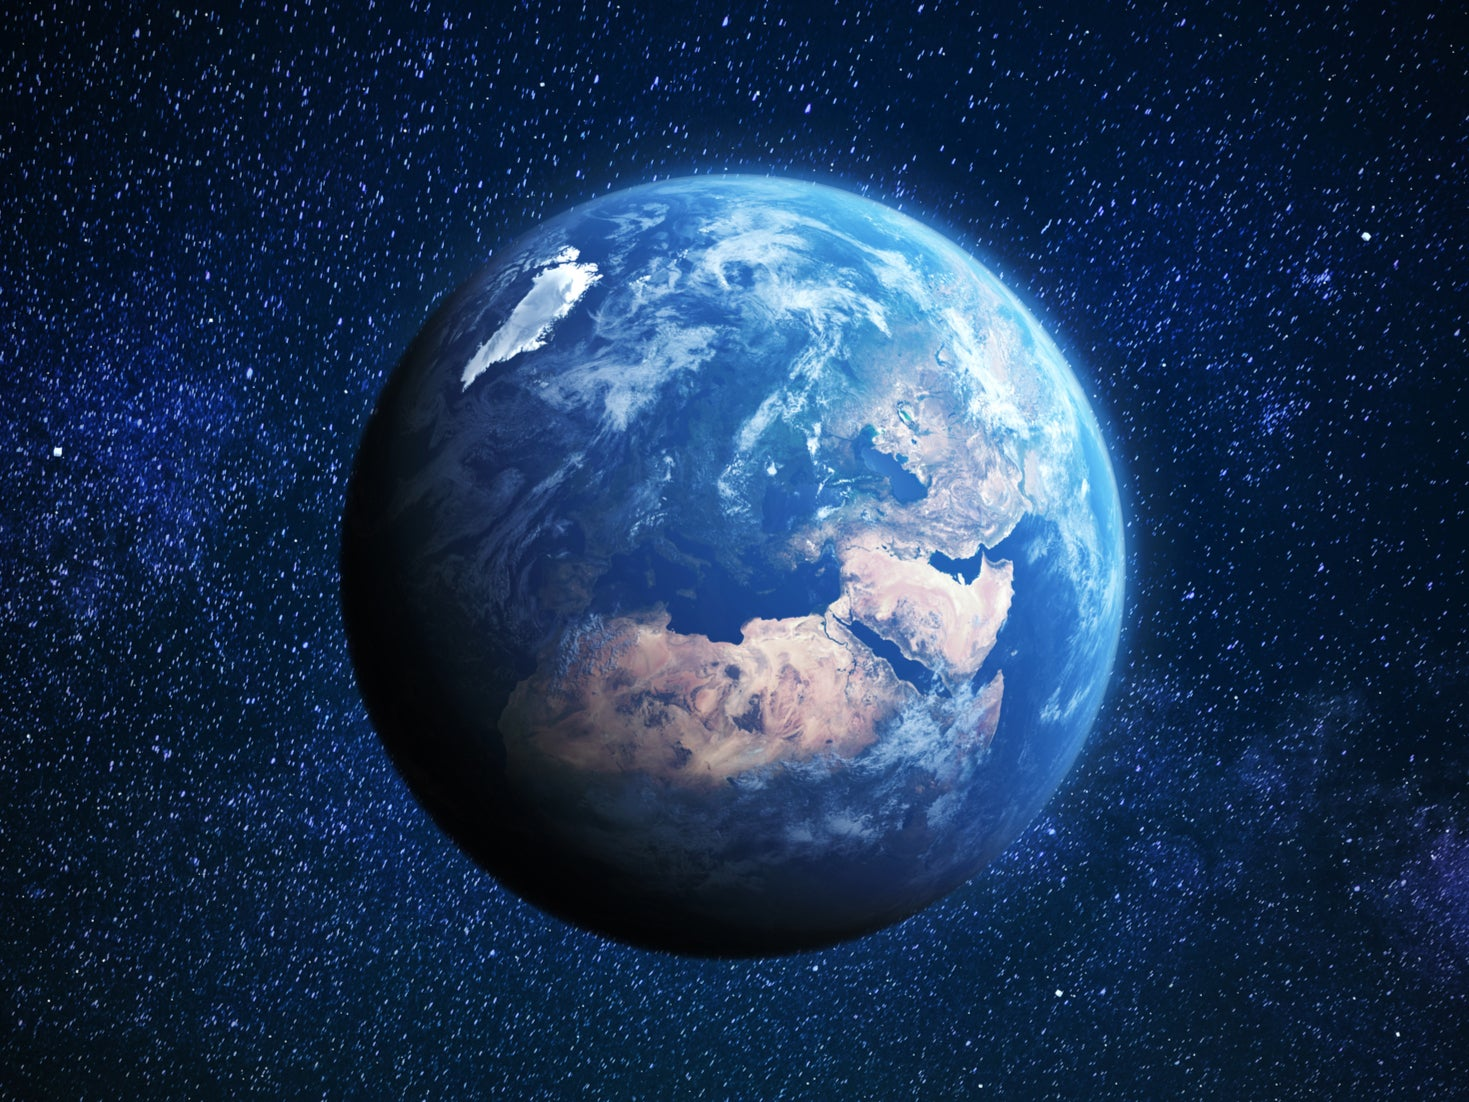 Earth has been habitable for billions of years – what are the chances?